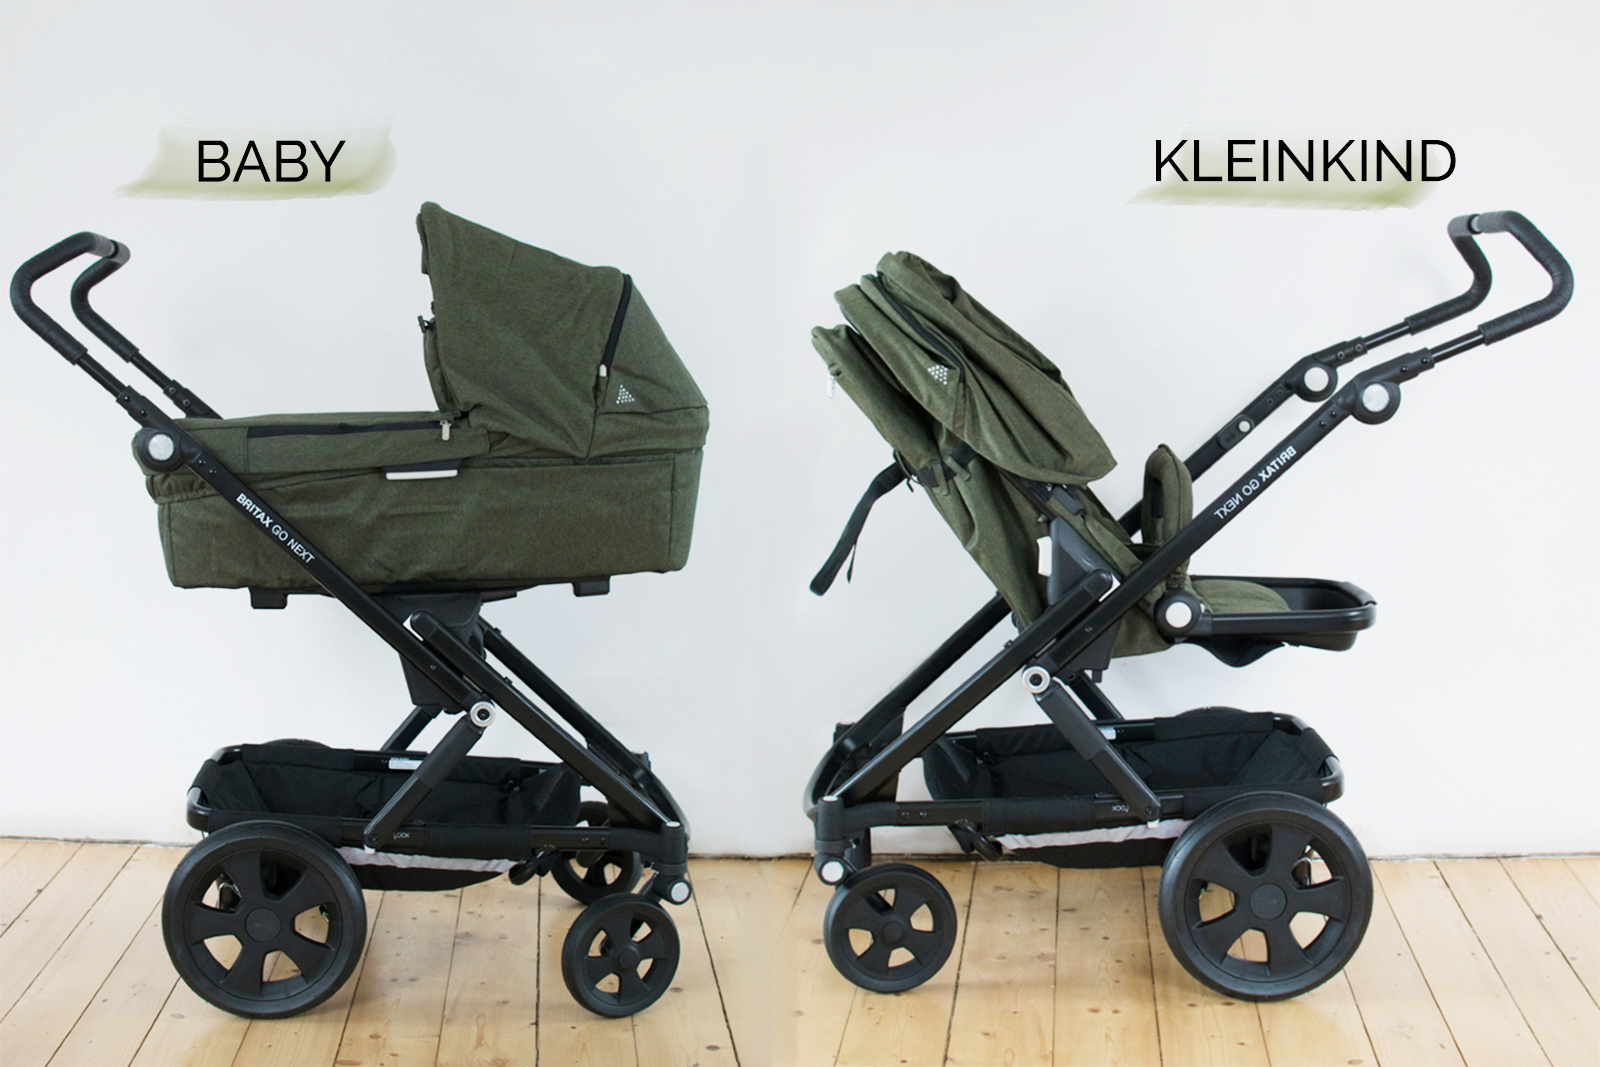 der britax go next kombi kinderwagen im test. Black Bedroom Furniture Sets. Home Design Ideas